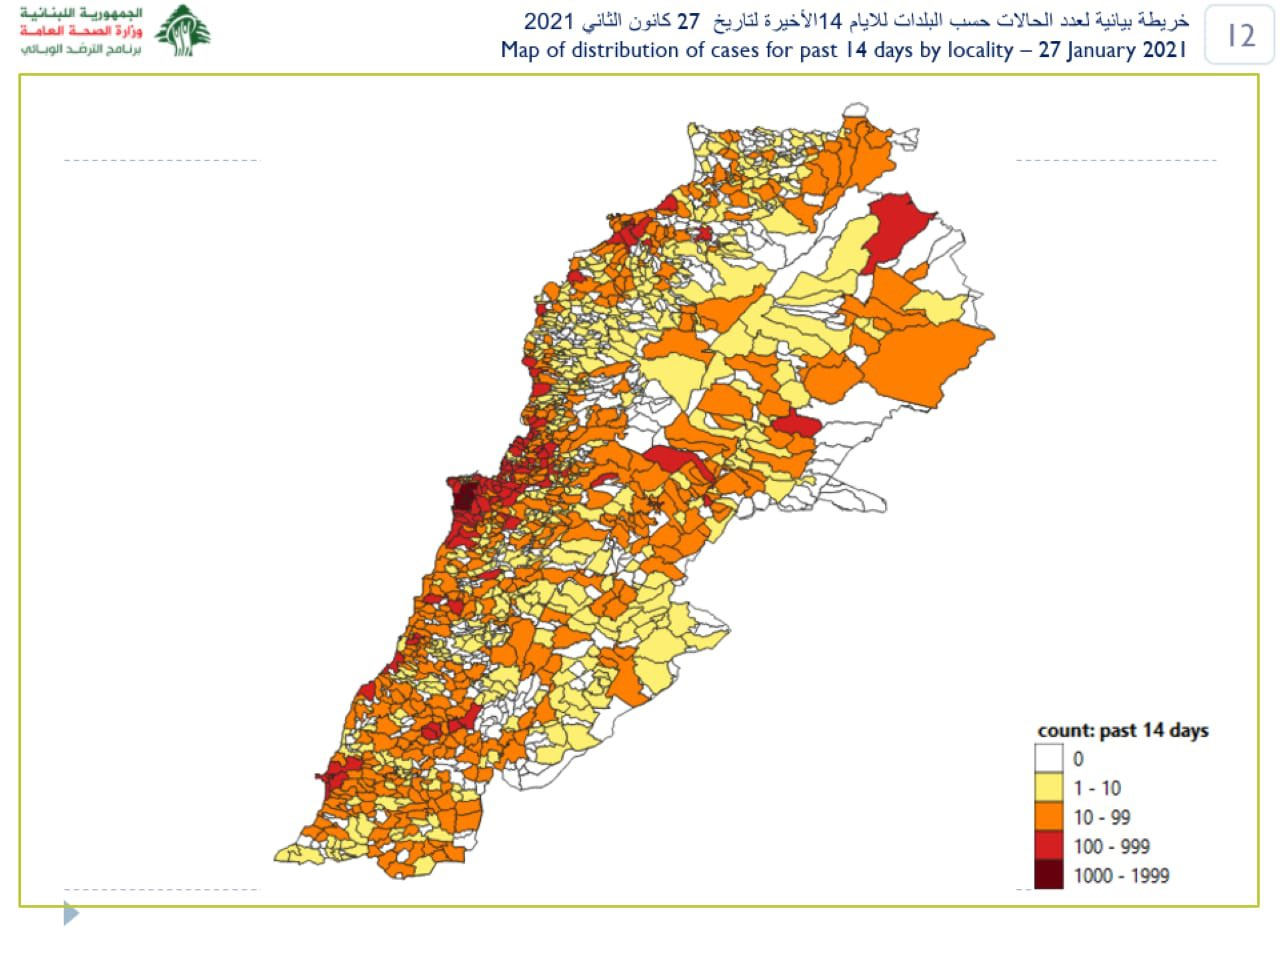 The distribution of cases in Lebanon over the past 14 days by locality.